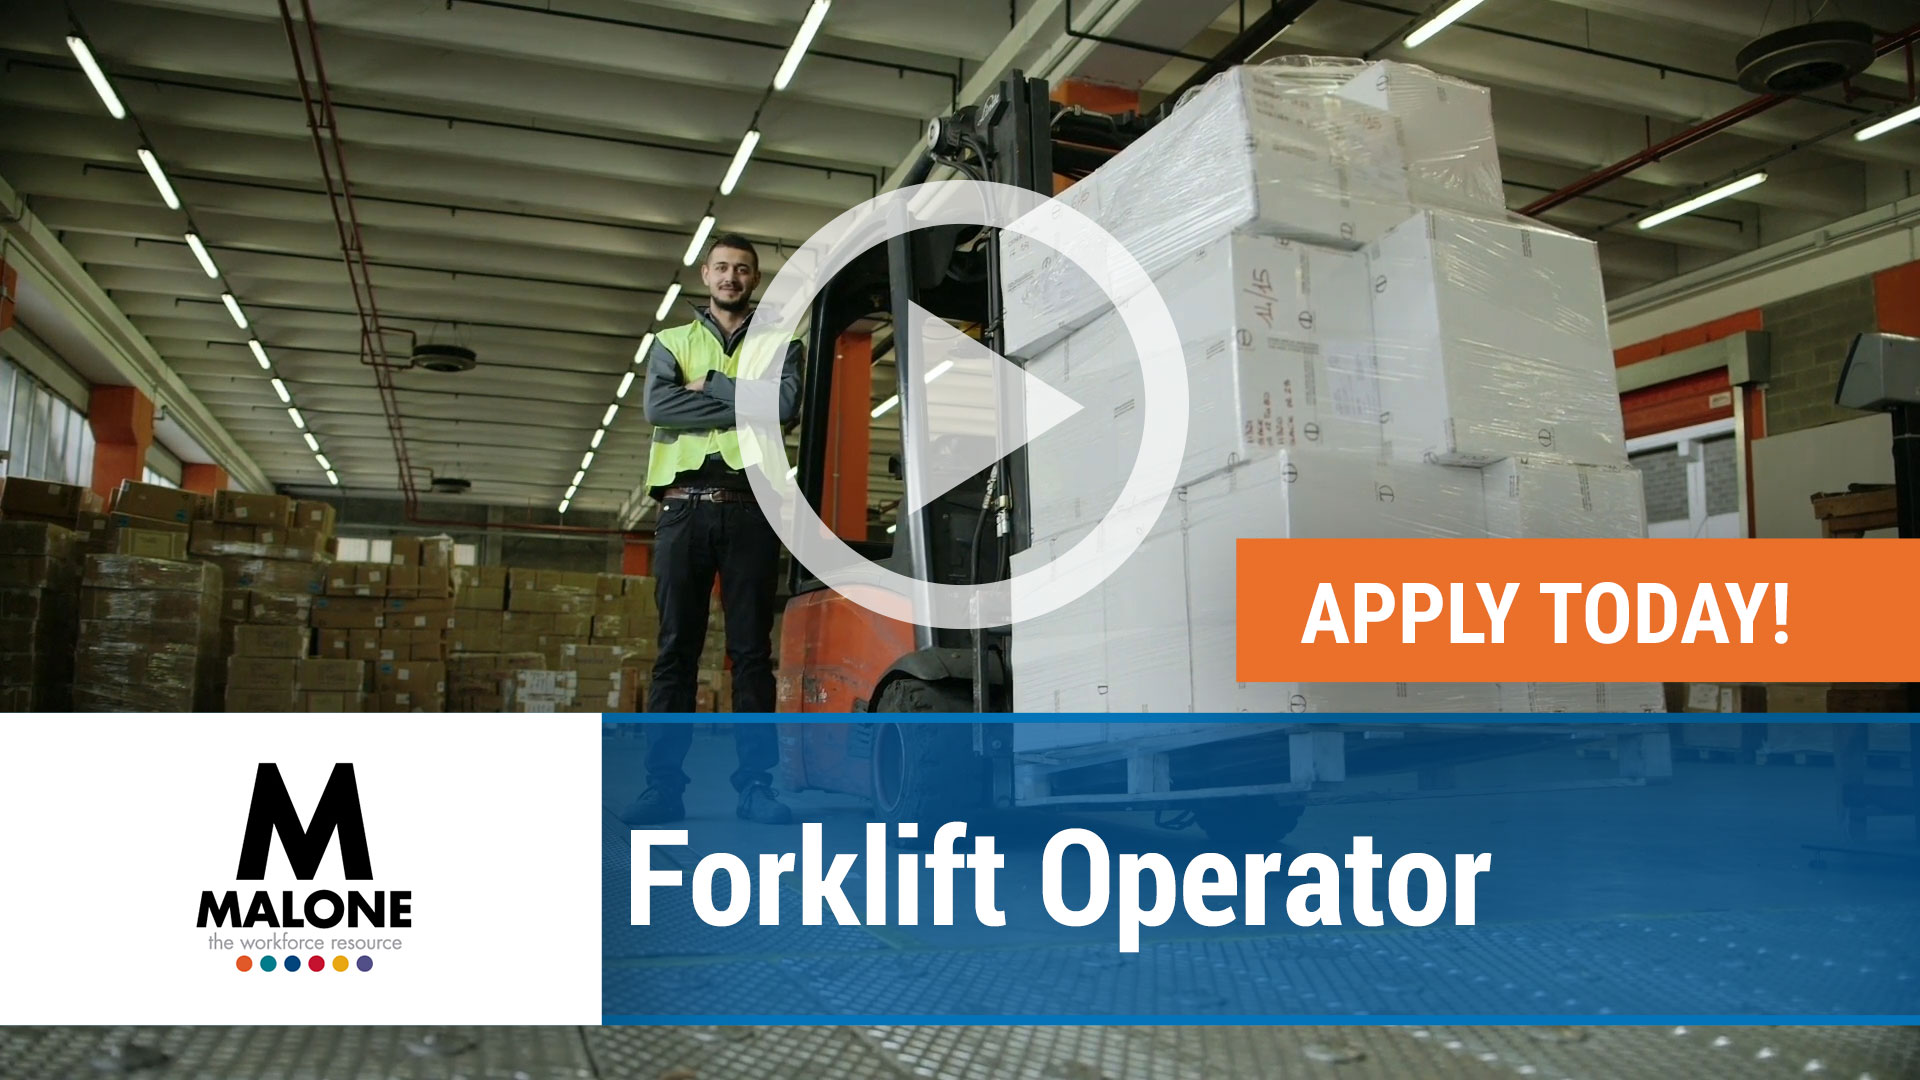 Watch our careers video for available job opening Forklift Operator in Jeffersonville, Evansville Indiana